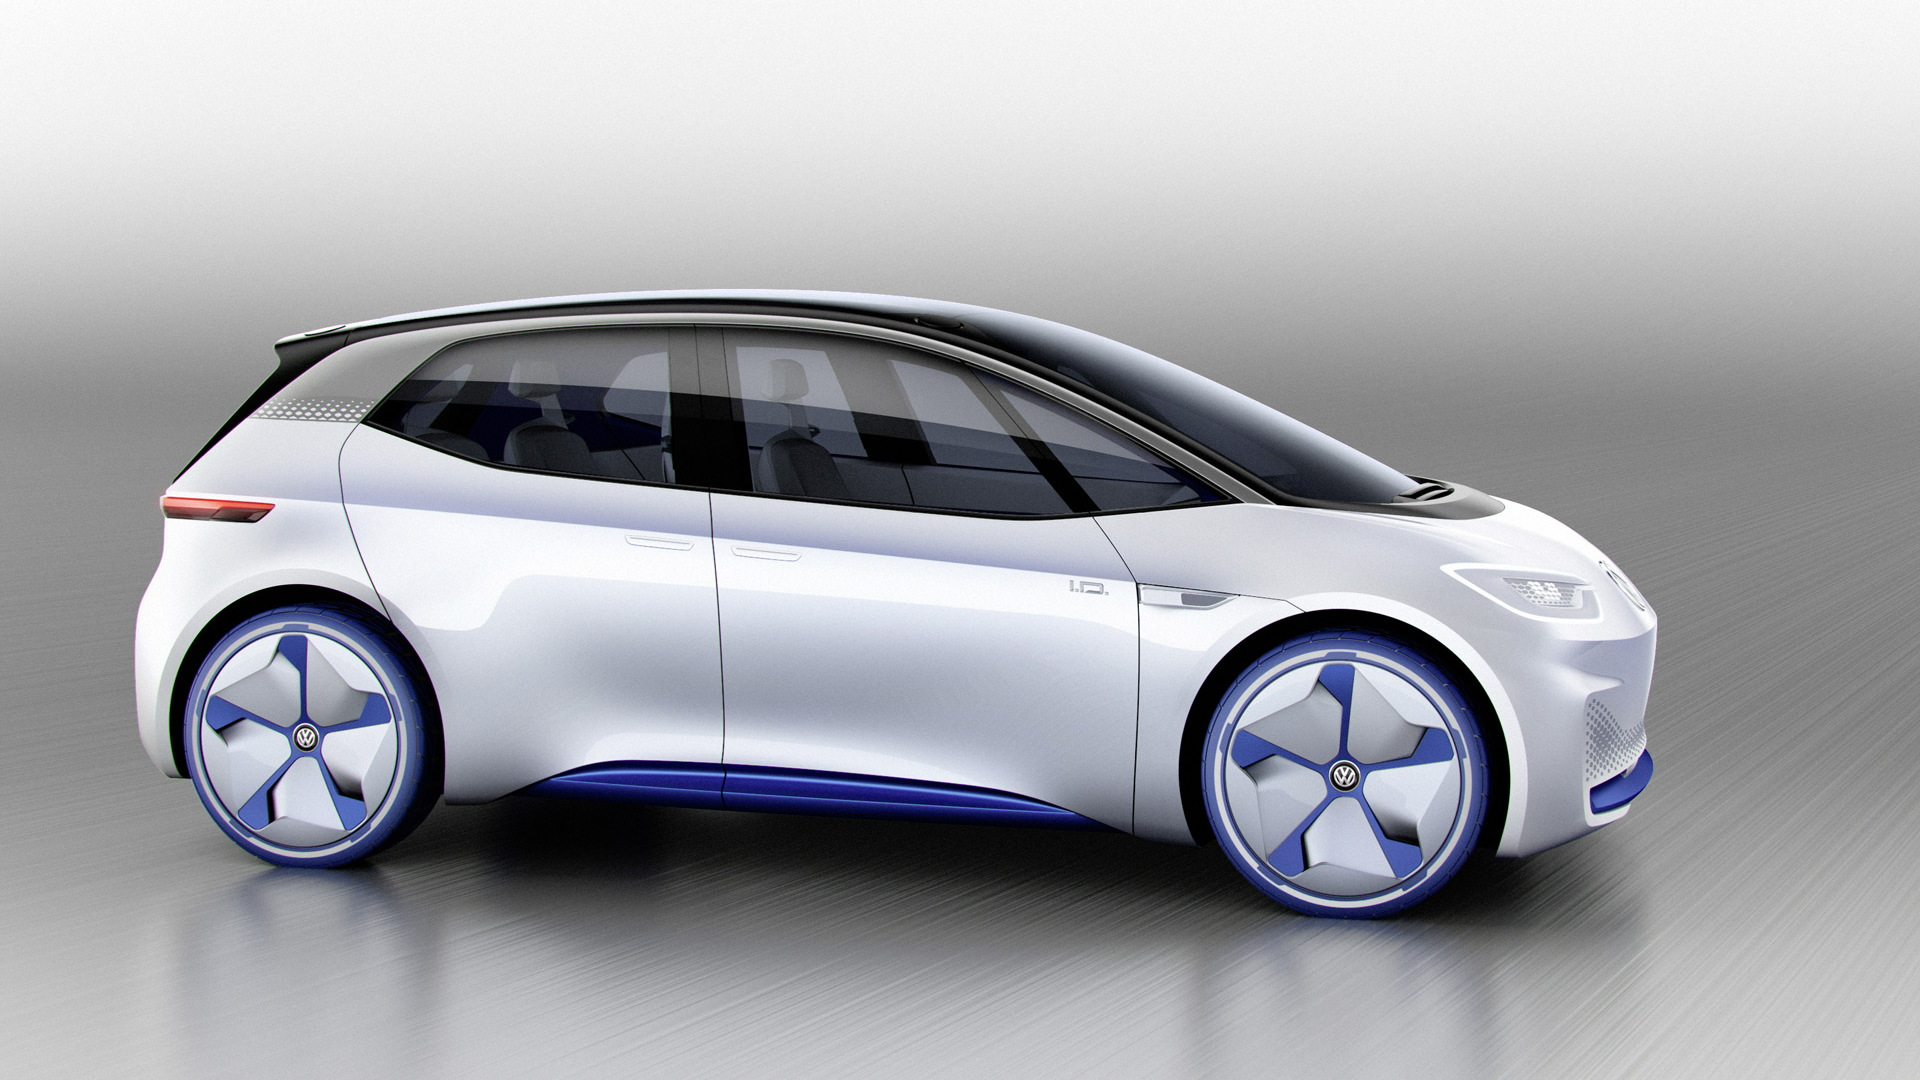 VW Shows Renderings Of ID Electric-car Concept For Paris